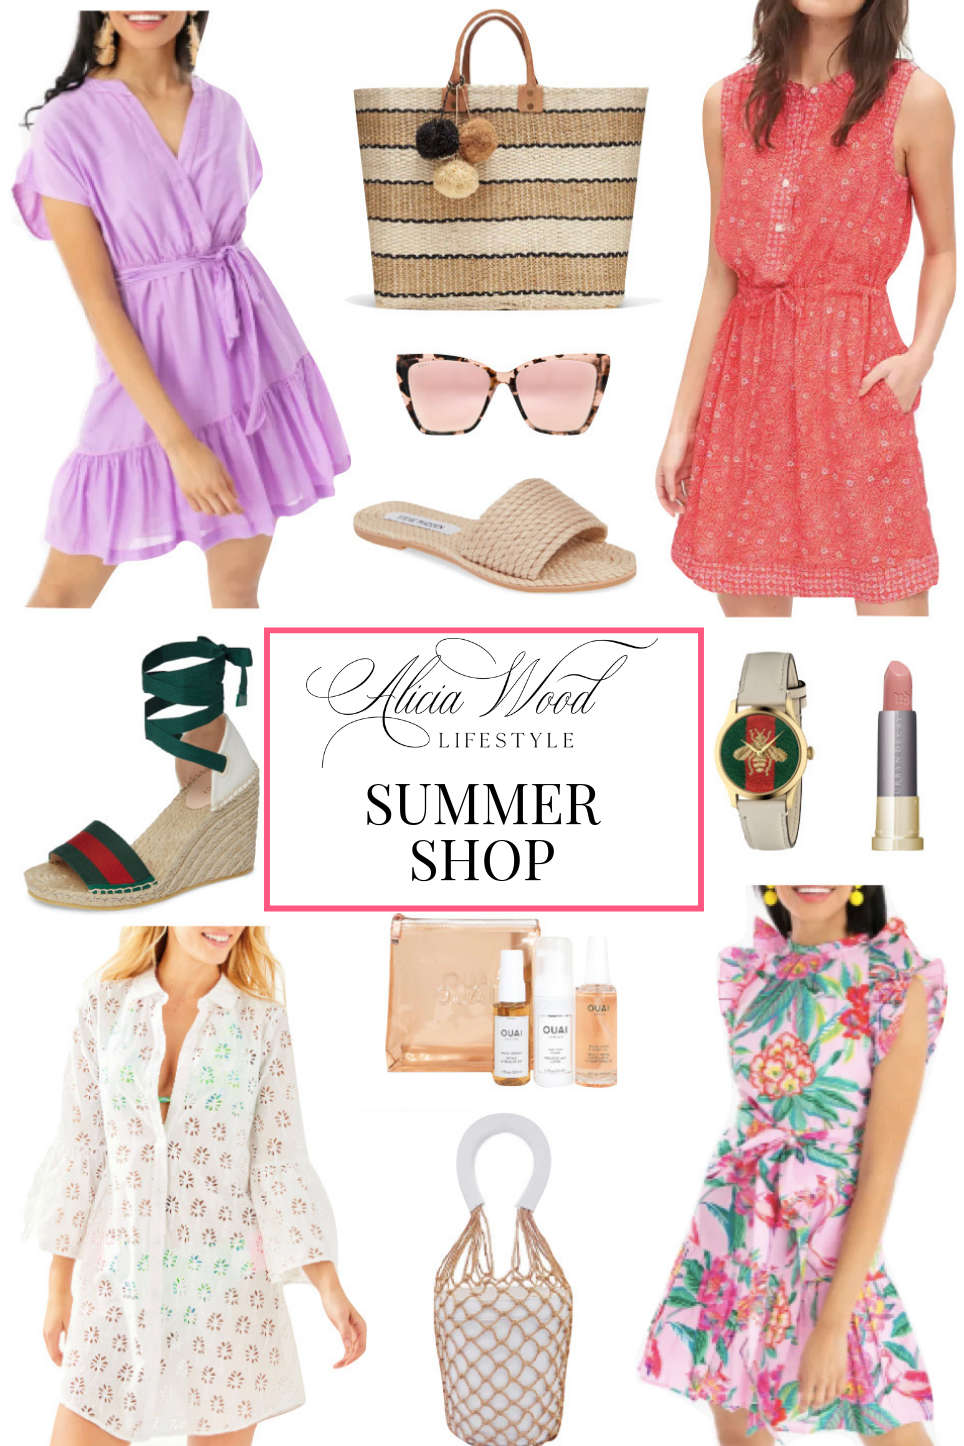 Alicia Wood Lifestyle Summer Shop